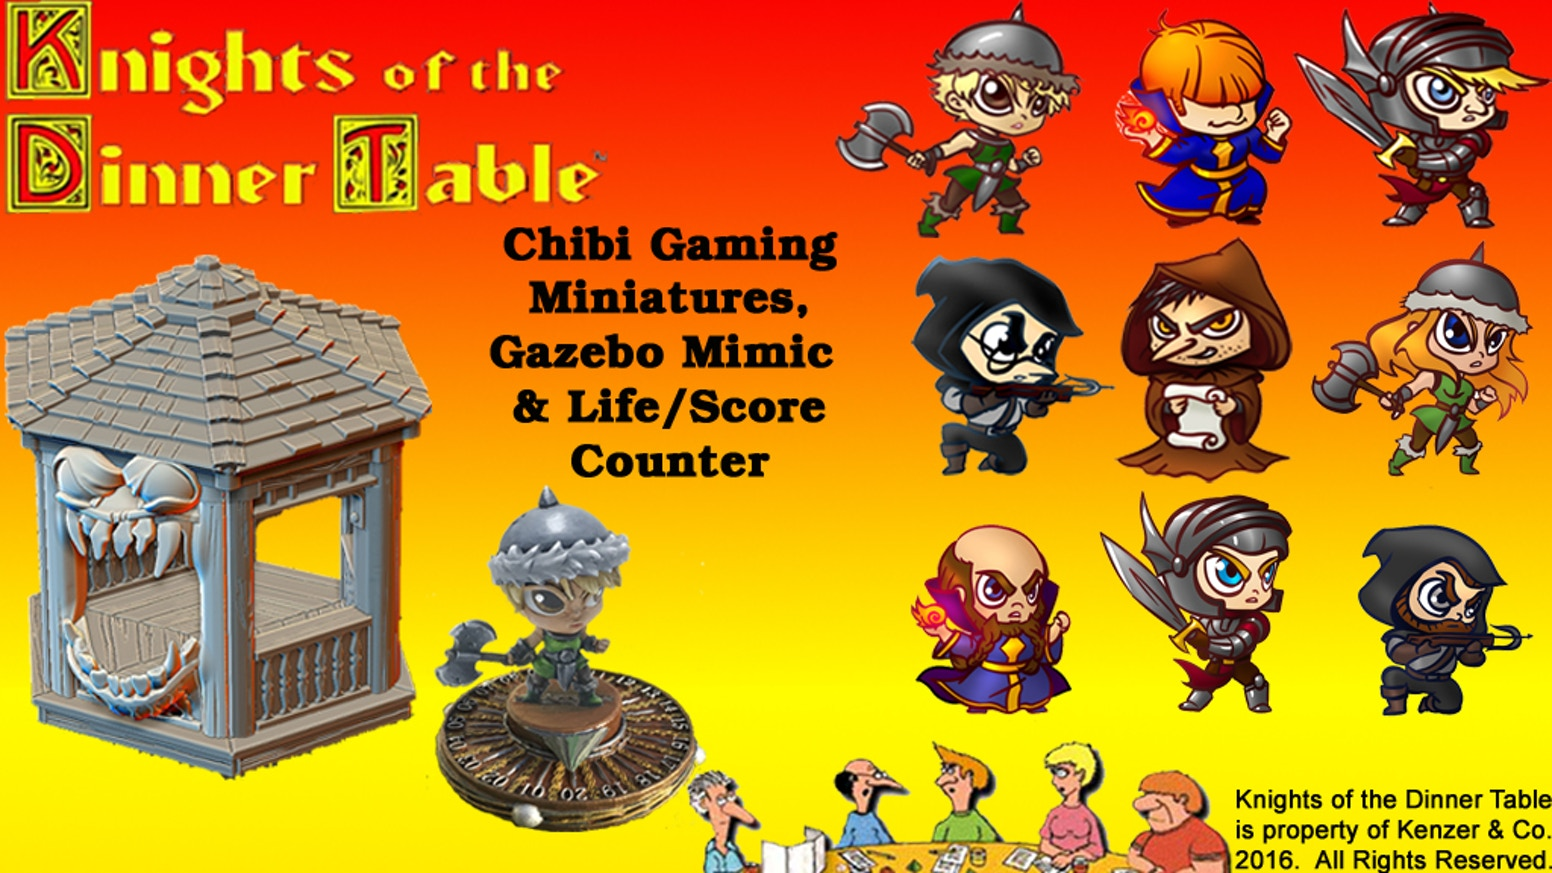 Sara, Brian, B.A., Bob and Dave, the full Knight of the Dinner Table crew, join your role playing games as fantasy chibi miniatures.